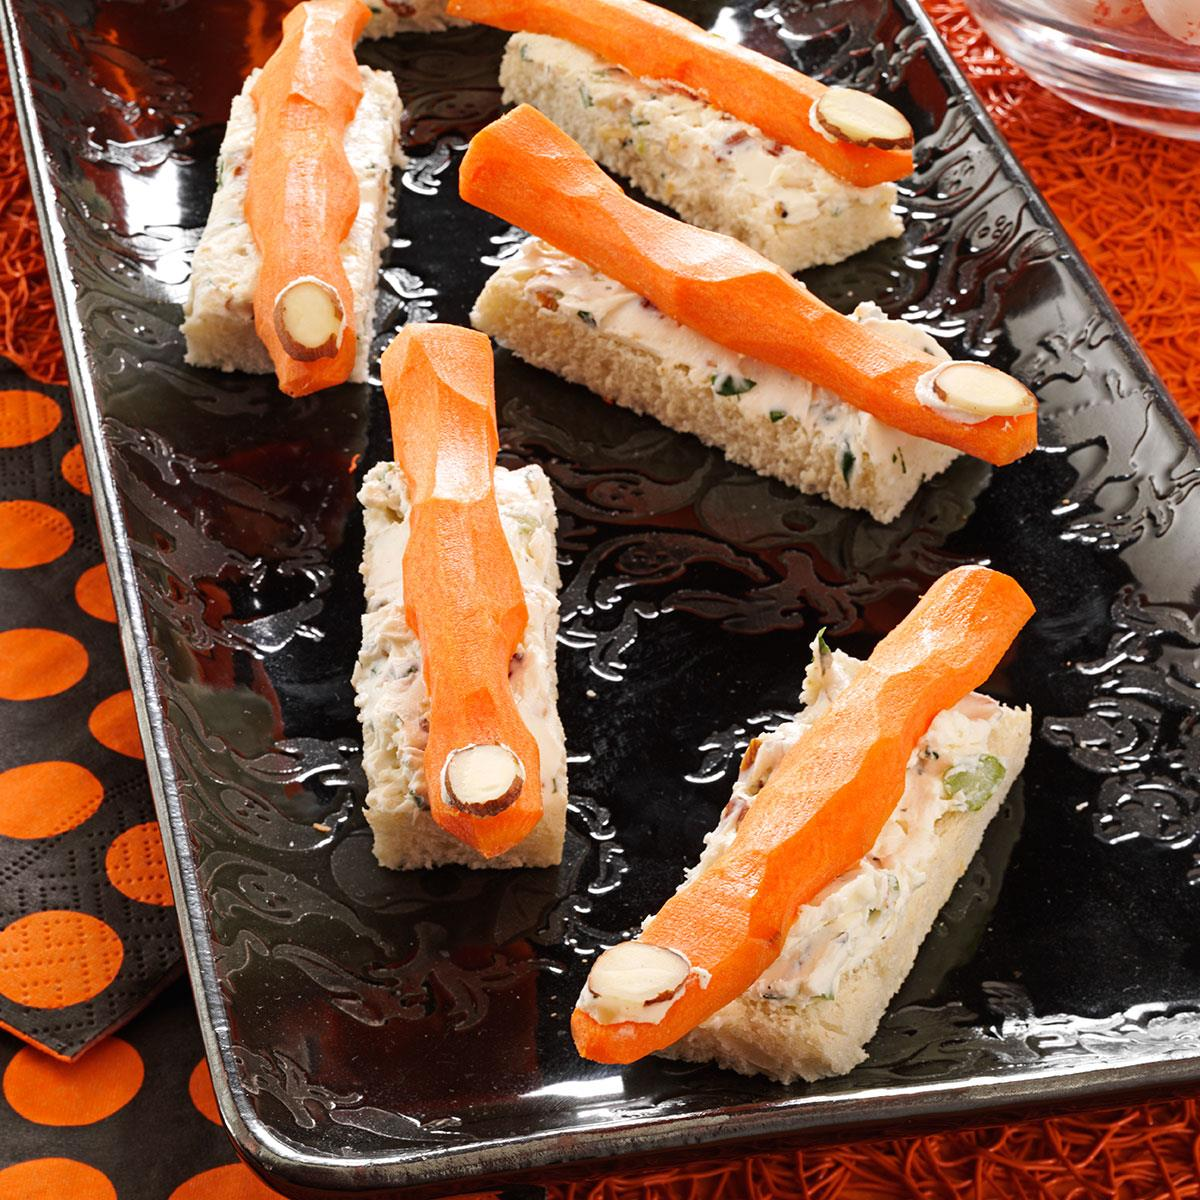 38 Cool Finger Foods For Your Next Party: Finger Sandwiches Recipe